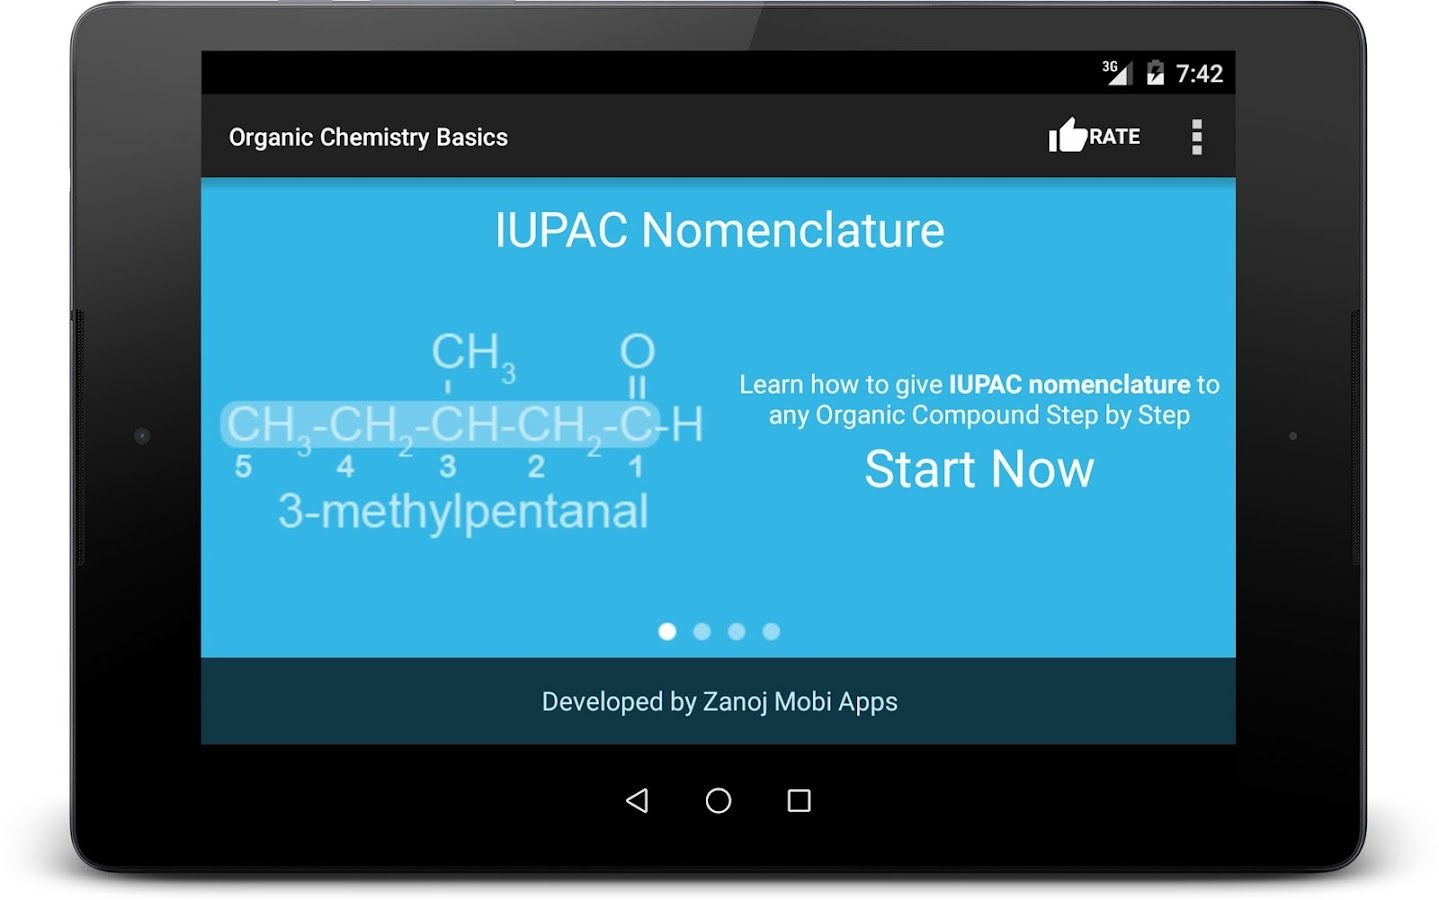 organic chemistry basics android apps on google play organic chemistry basics screenshot